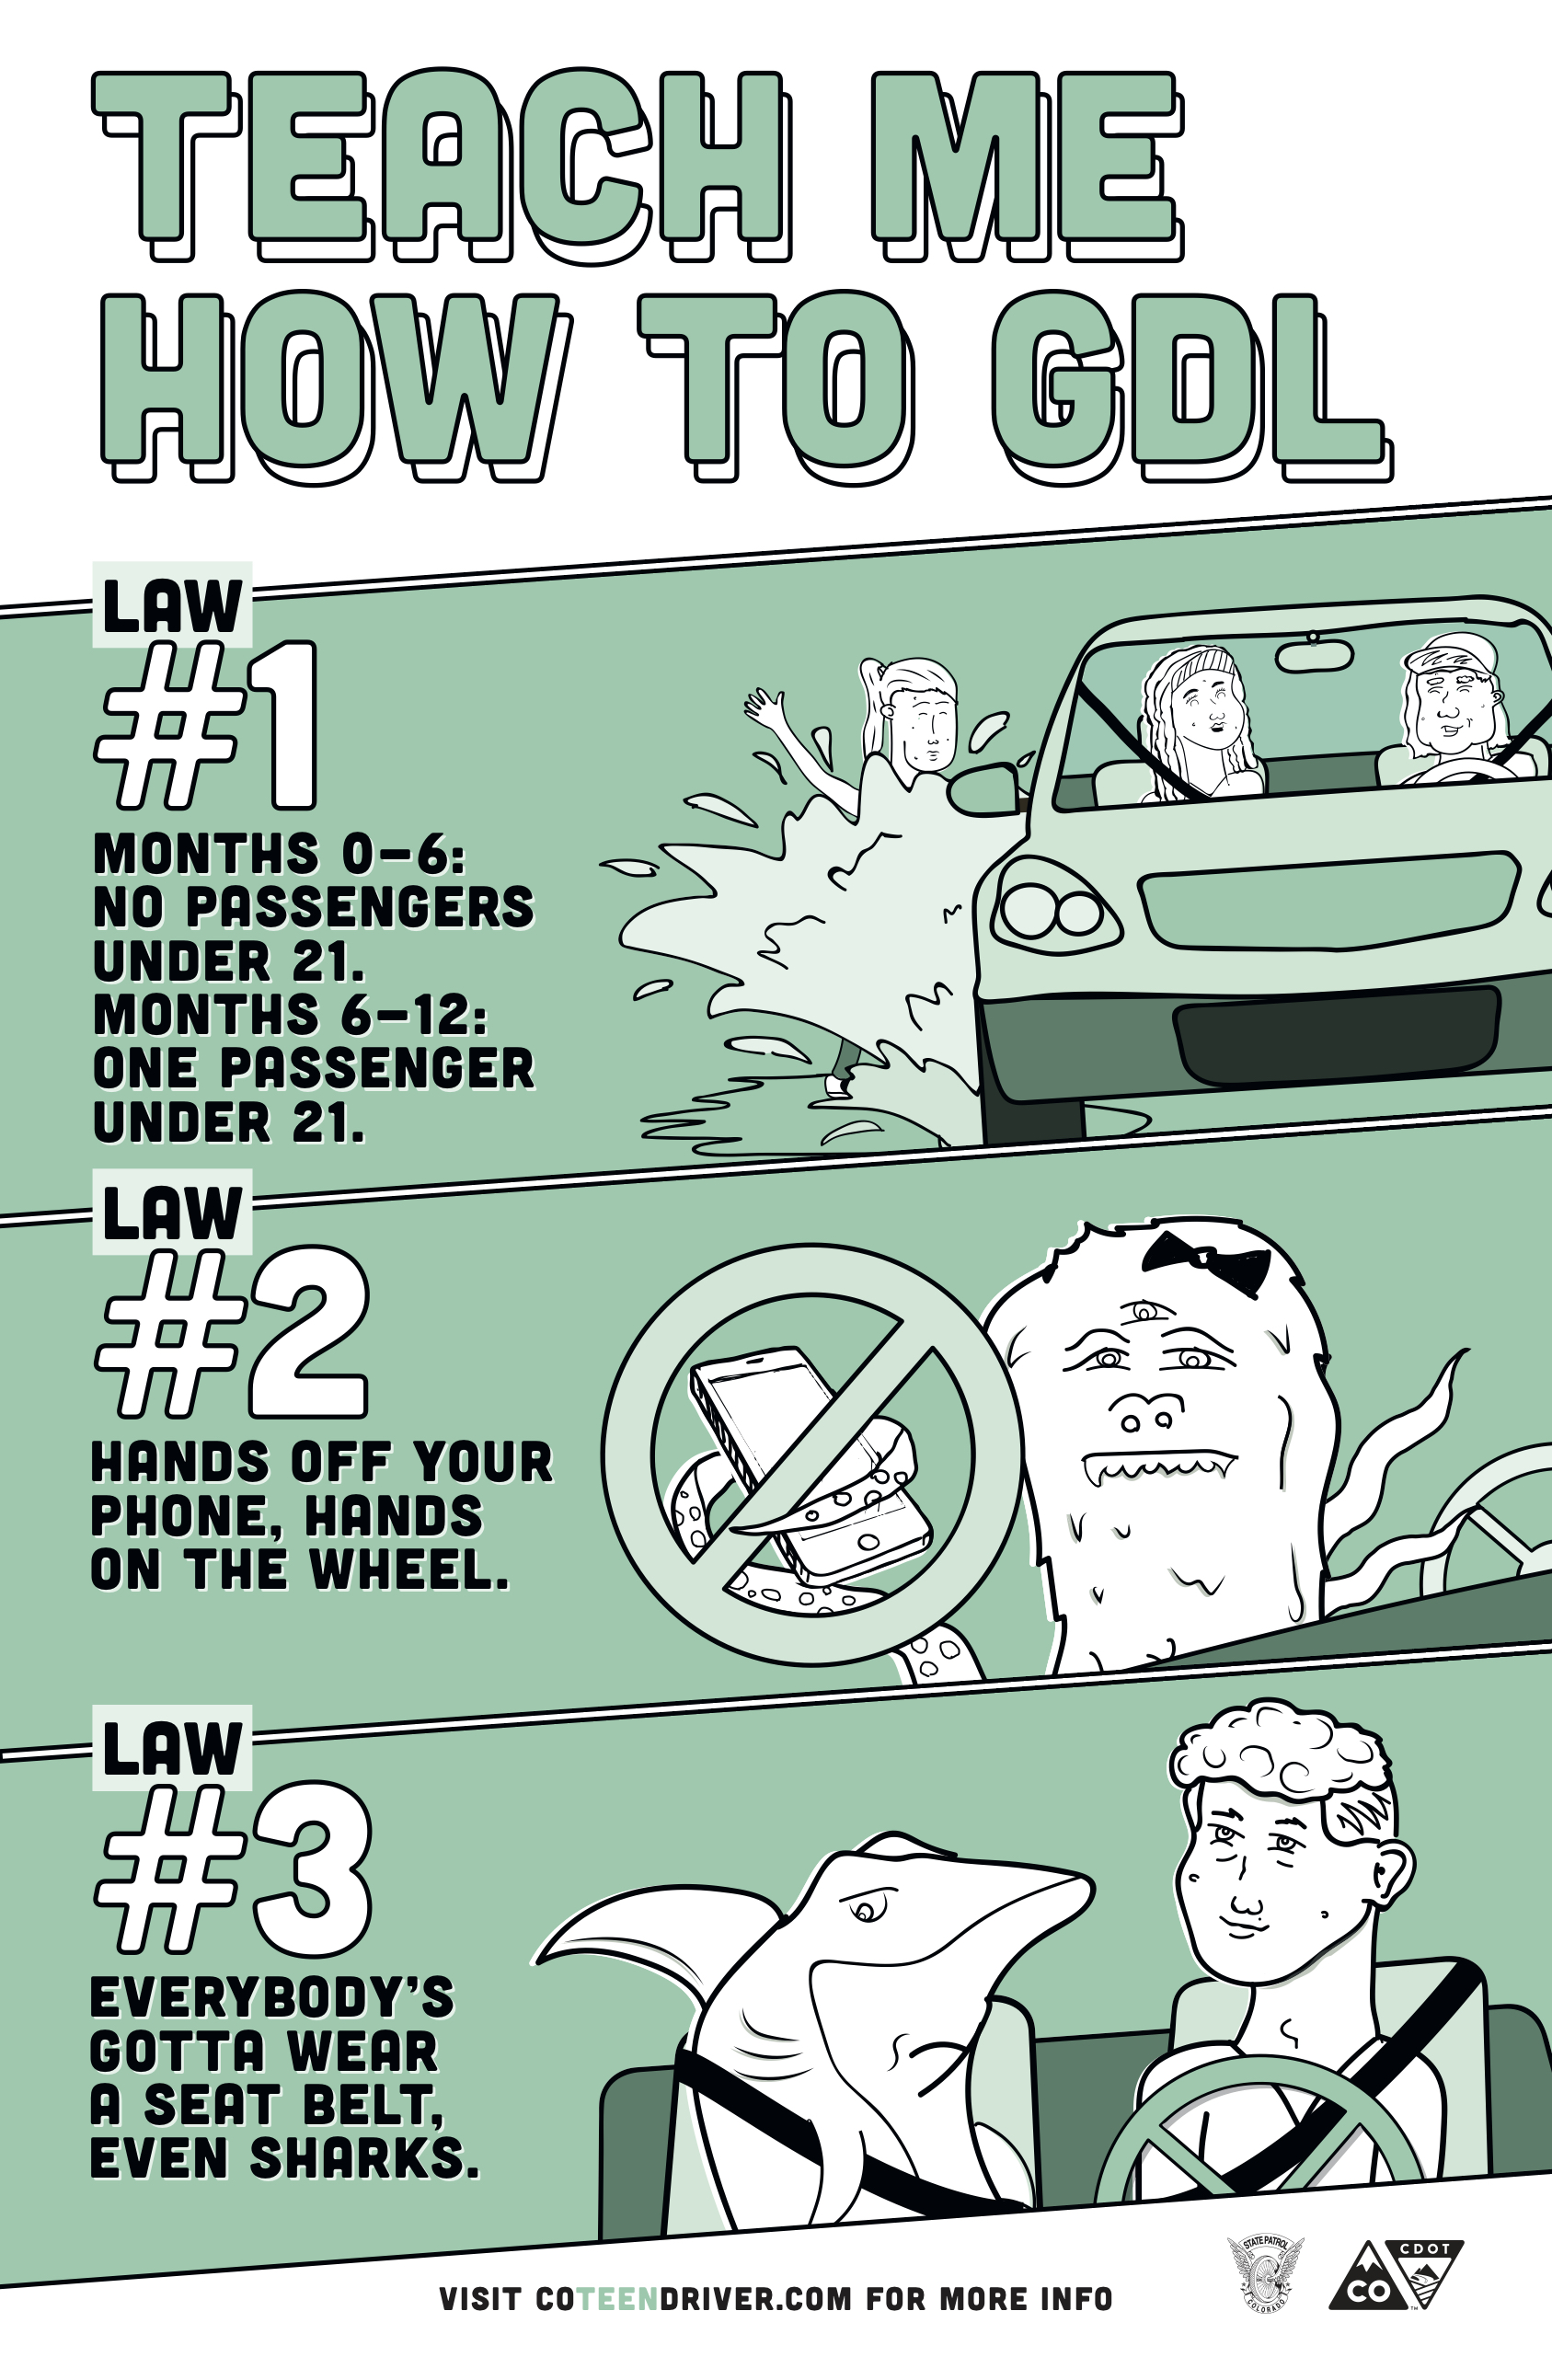 Teen Driving Campaign 2018